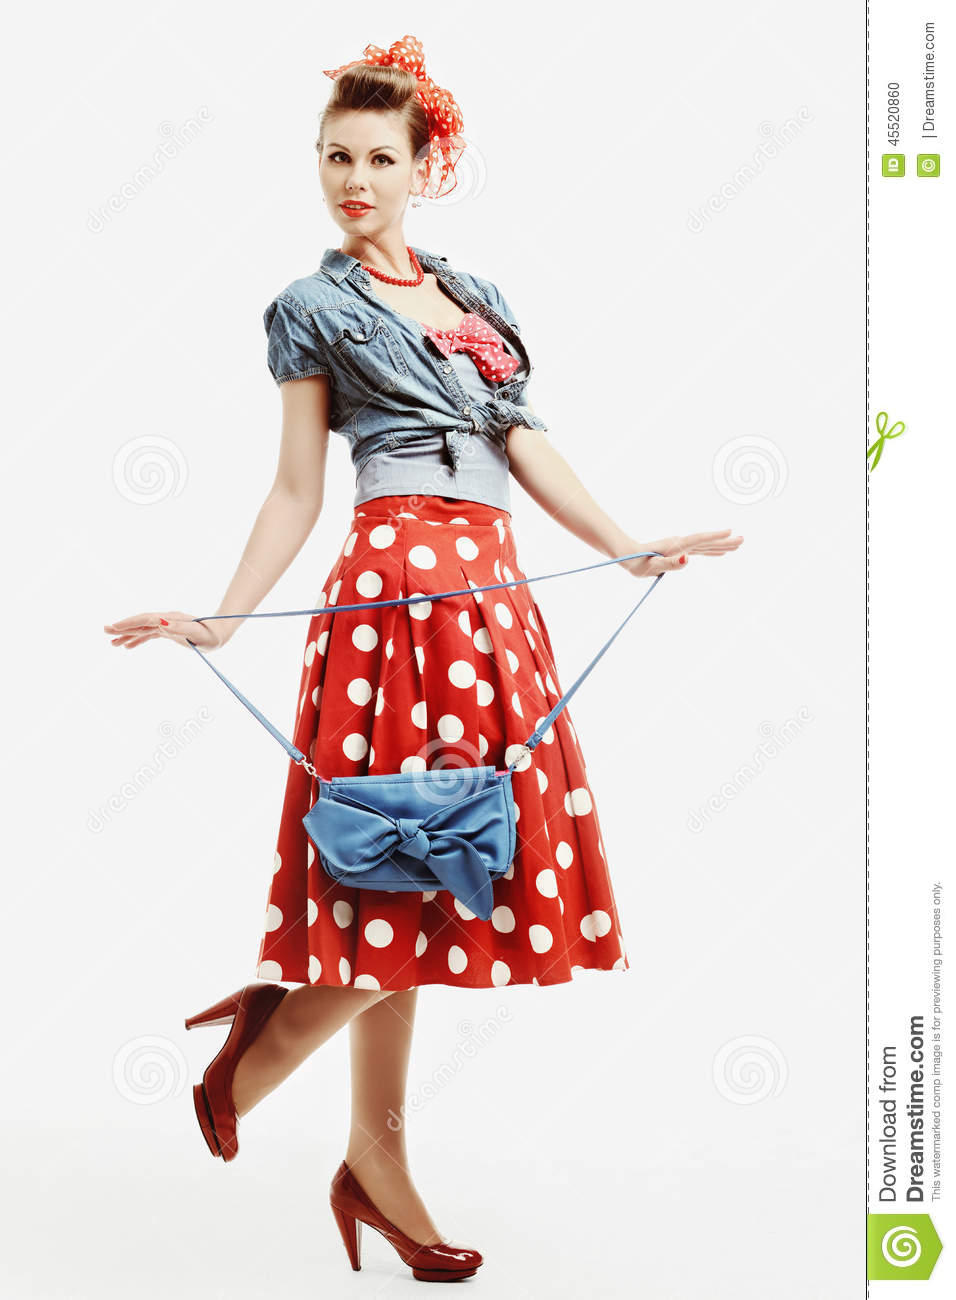 Pin Up Young Woman In Vintage American Style With A Clutch Stock Photo Image 45520860